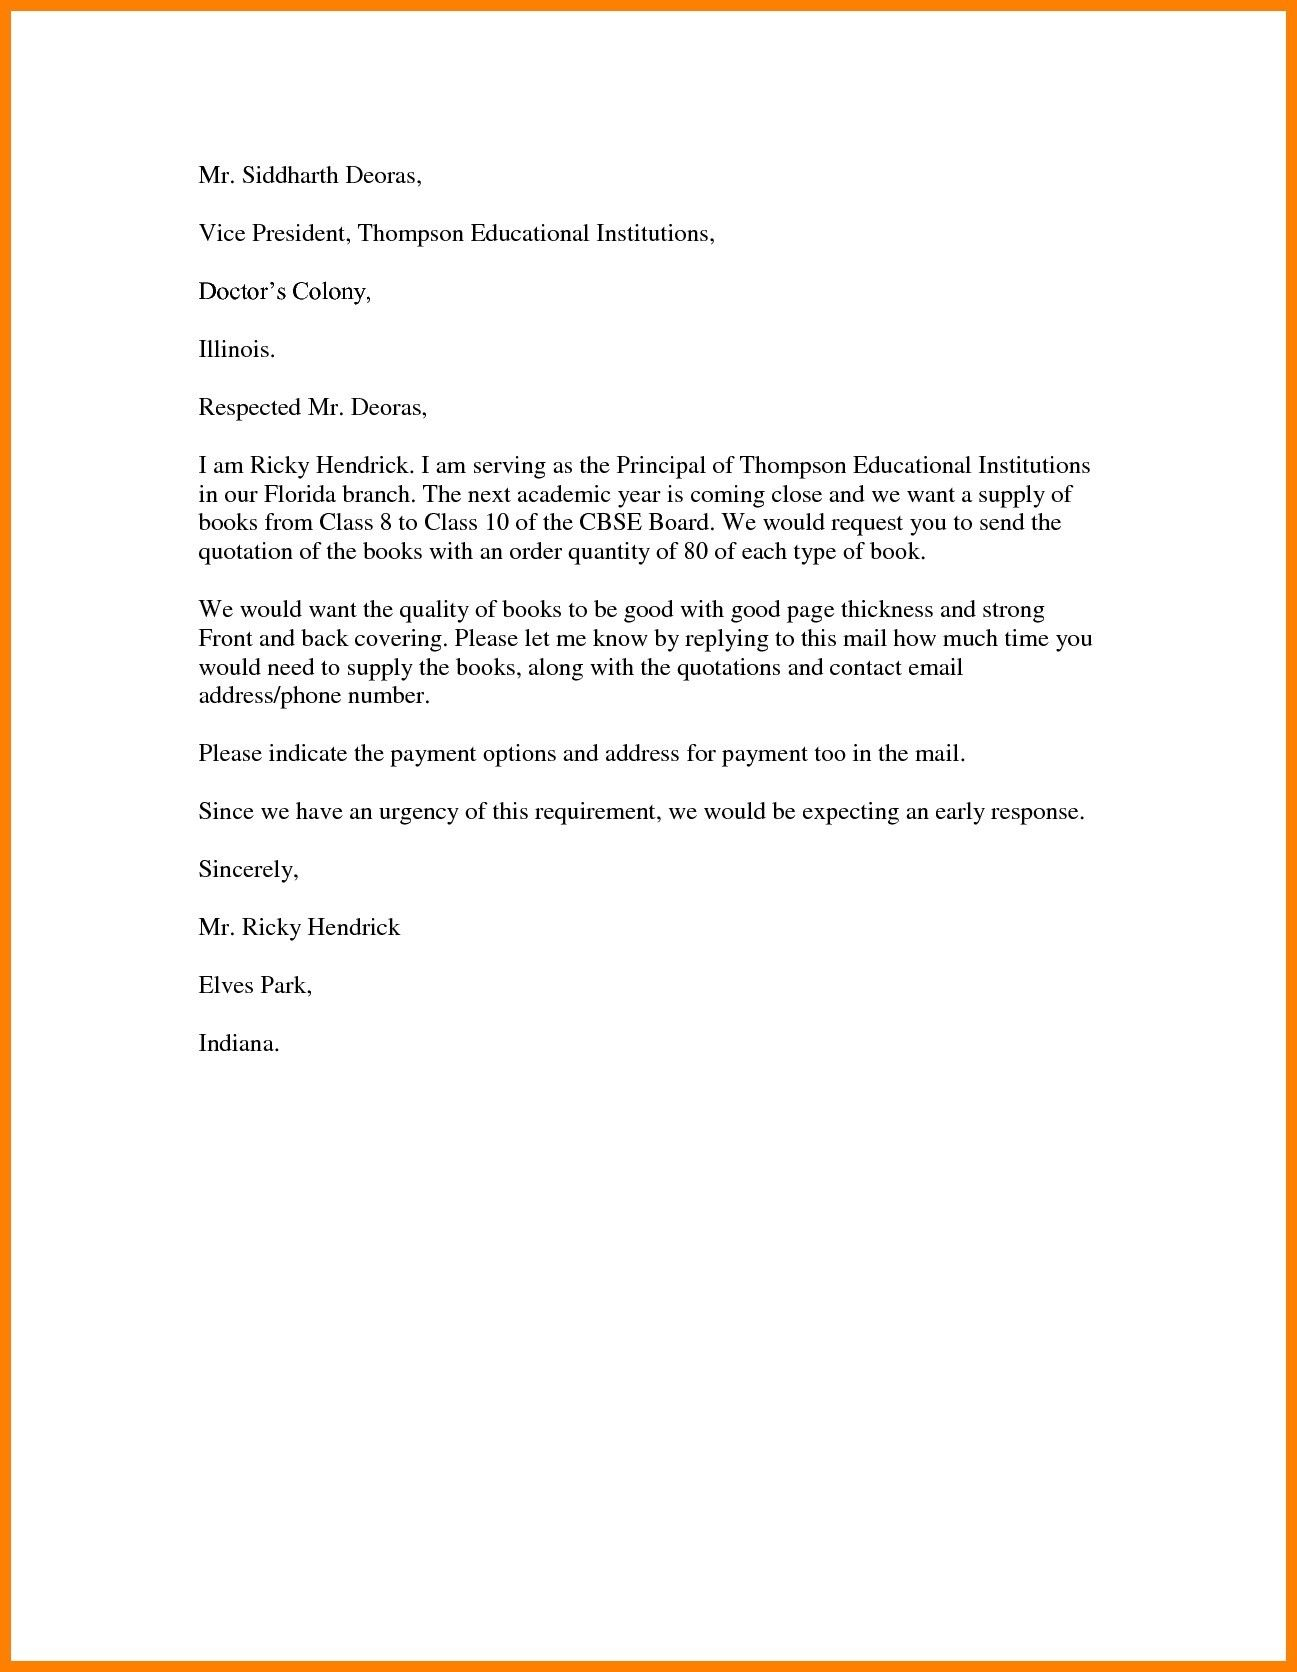 Cover Letter Quotation Template | Cover Letter Template | Pinterest ...